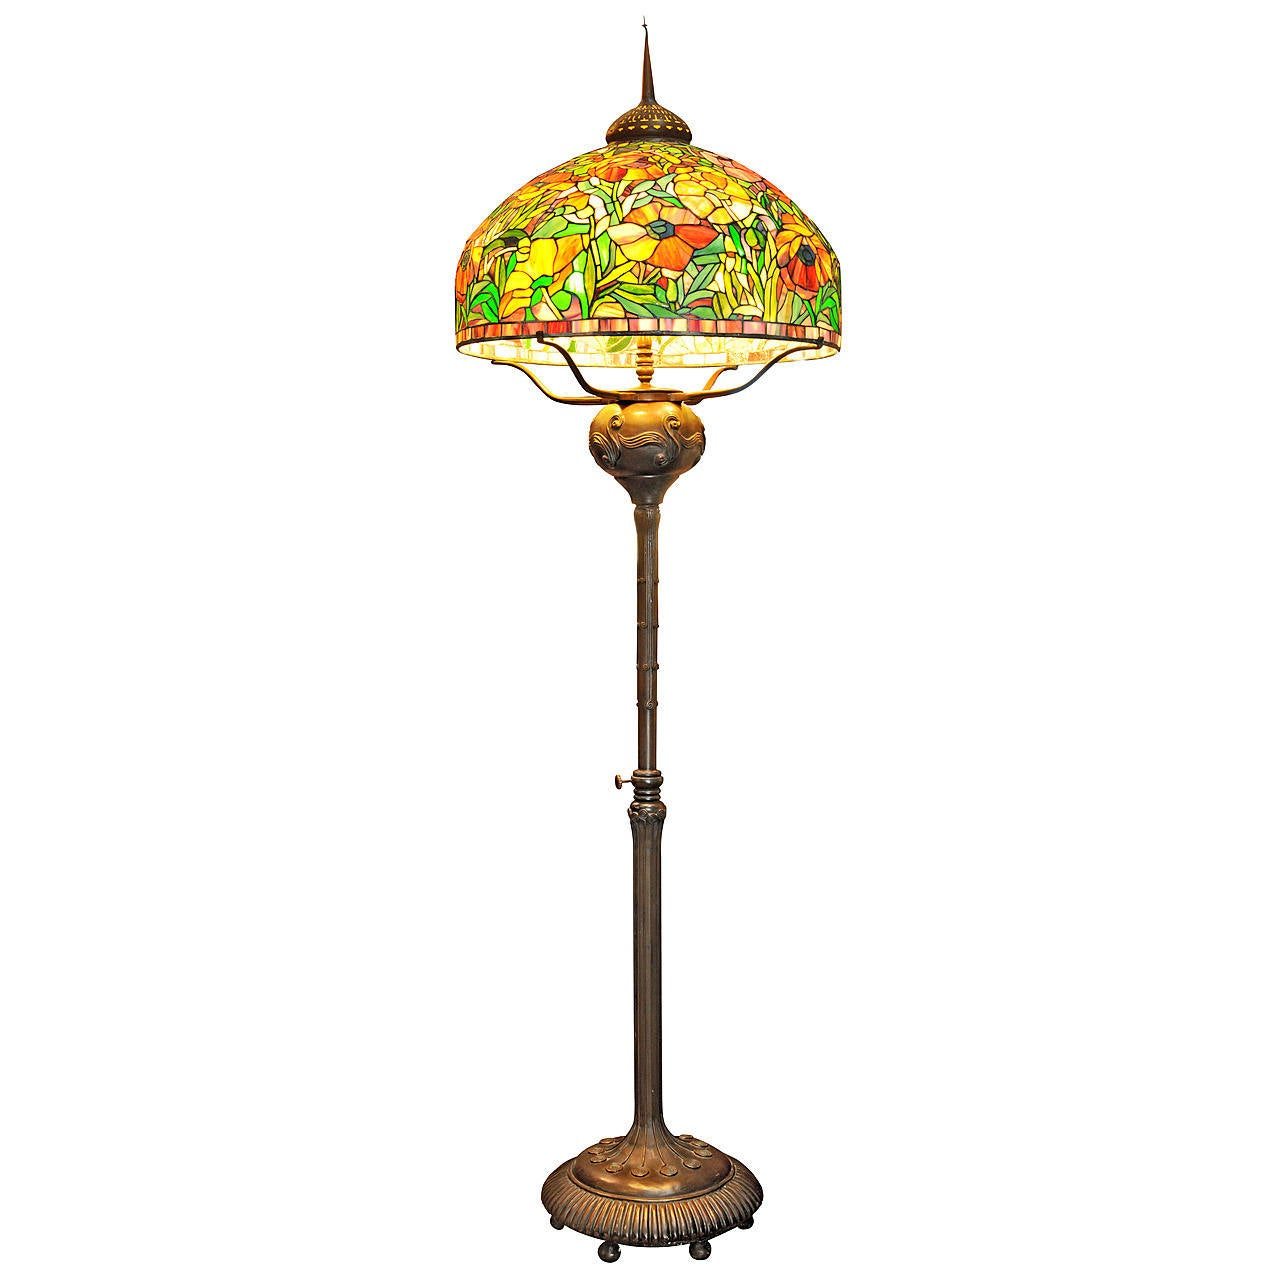 stained glass floor lamp for sale at 1stdibs. Black Bedroom Furniture Sets. Home Design Ideas